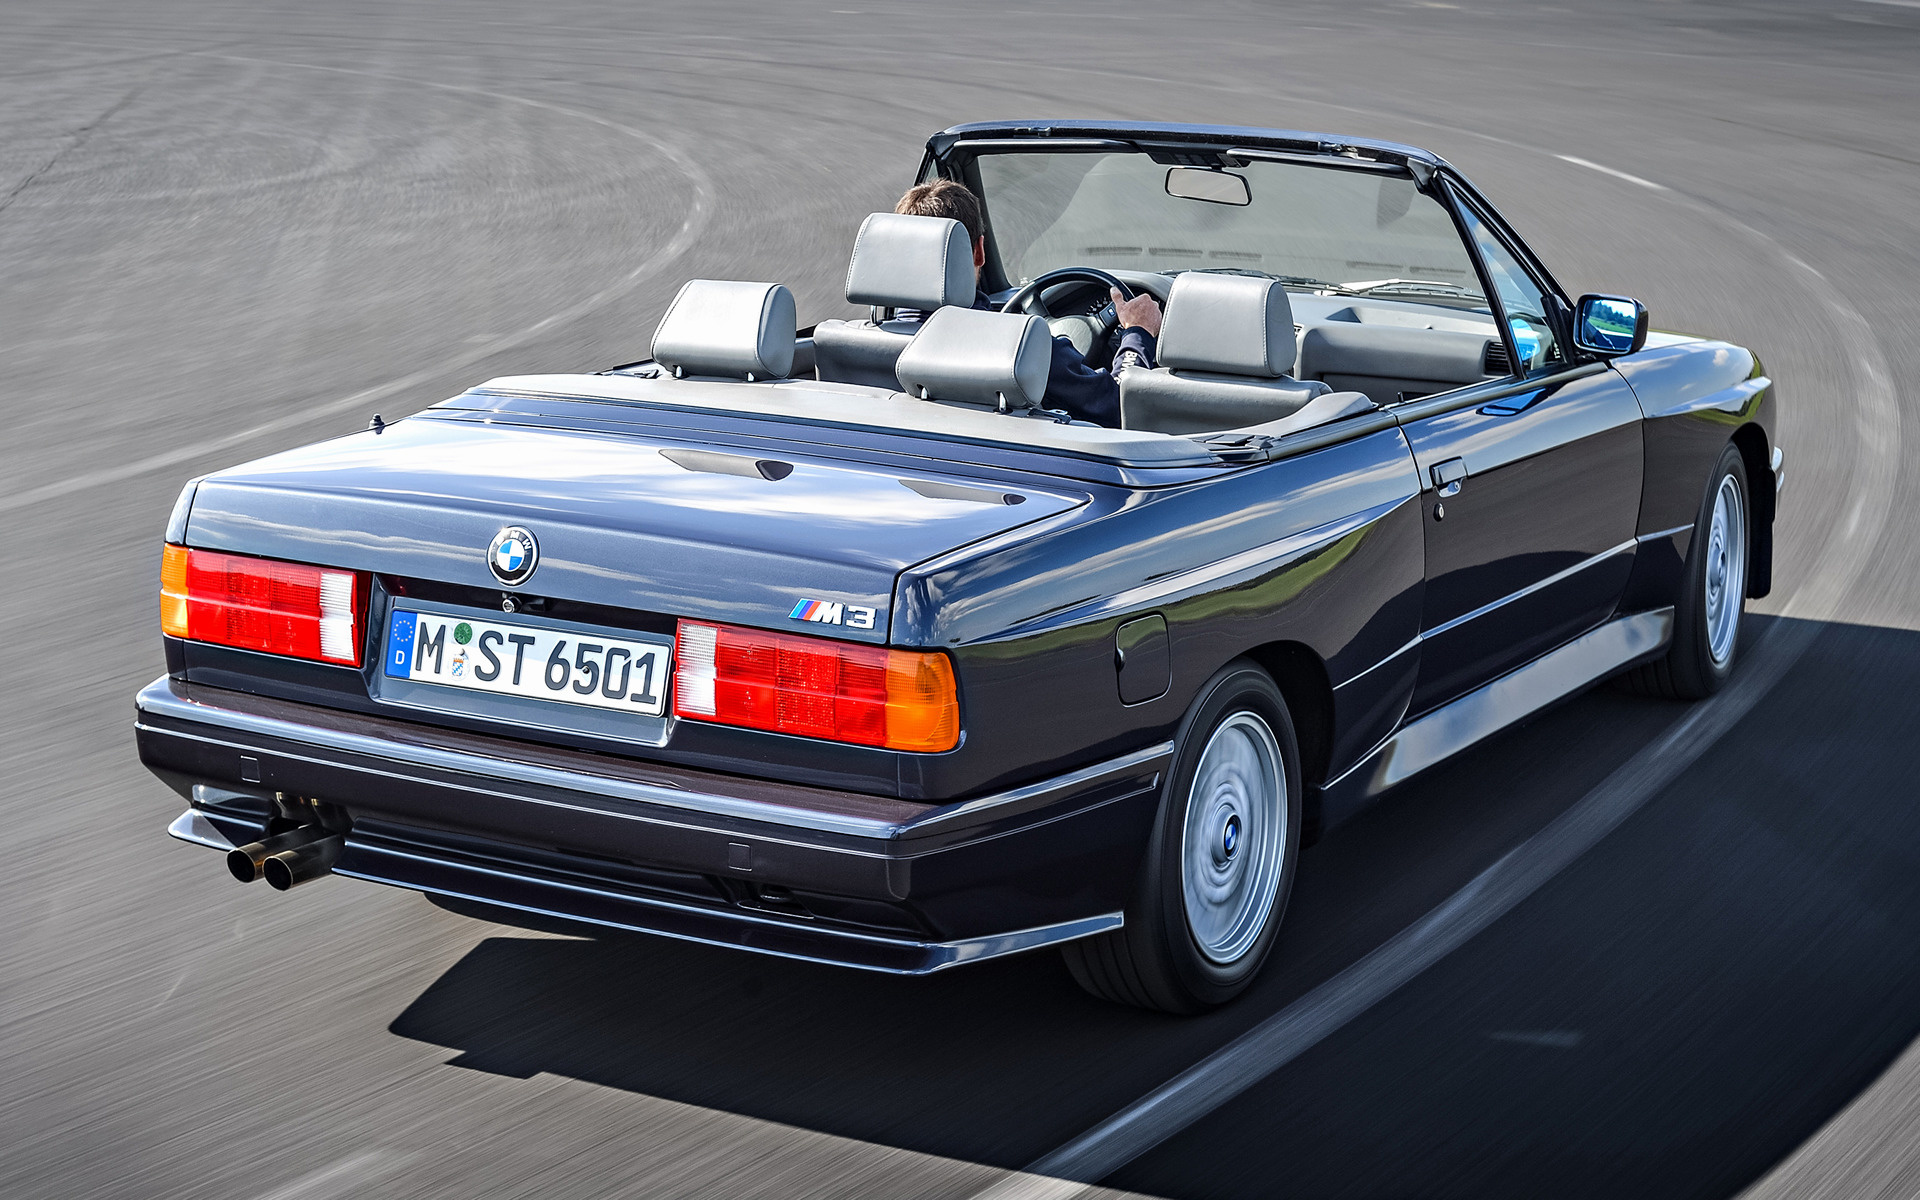 BMW M3 Cabrio (1988) Wallpapers and HD Images - Car Pixel